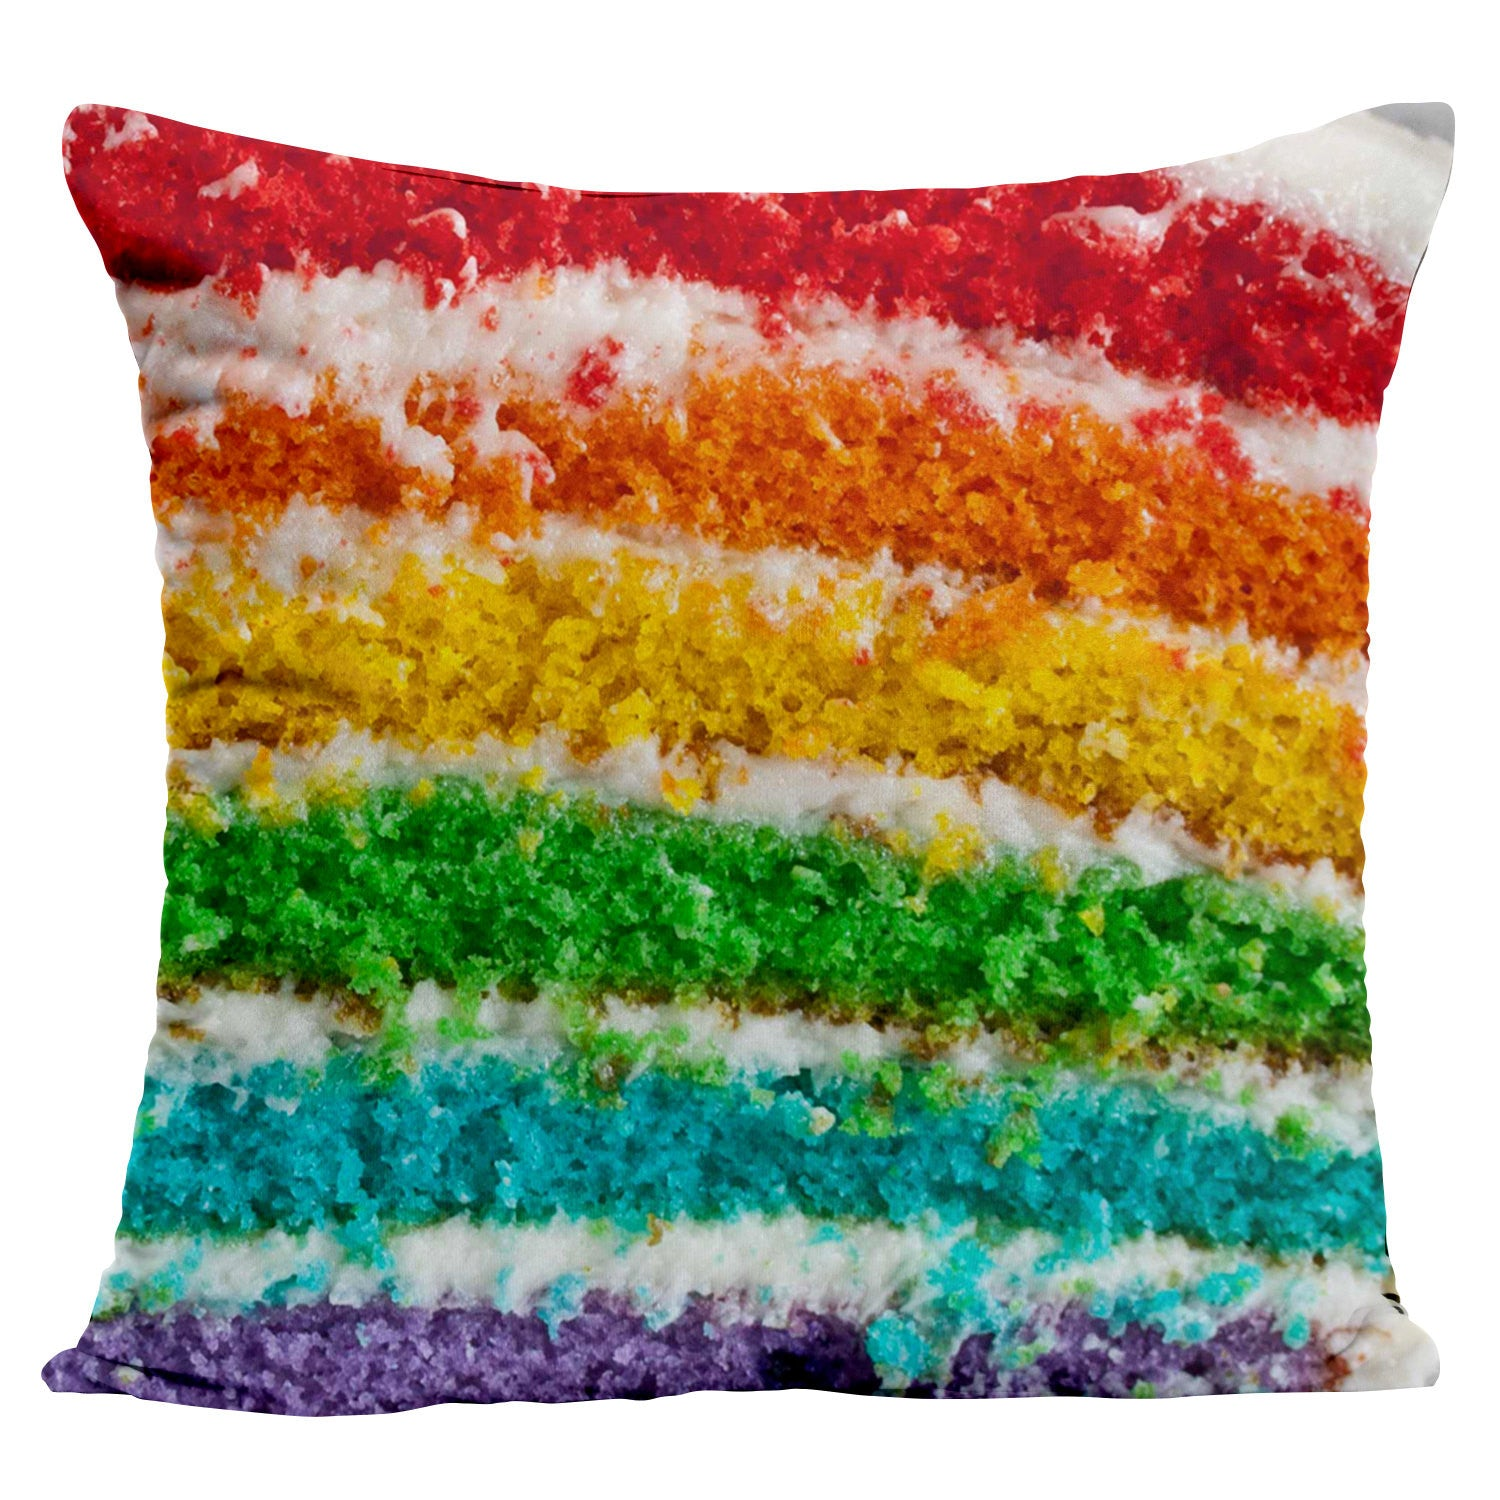 Rainbow cake Pillow